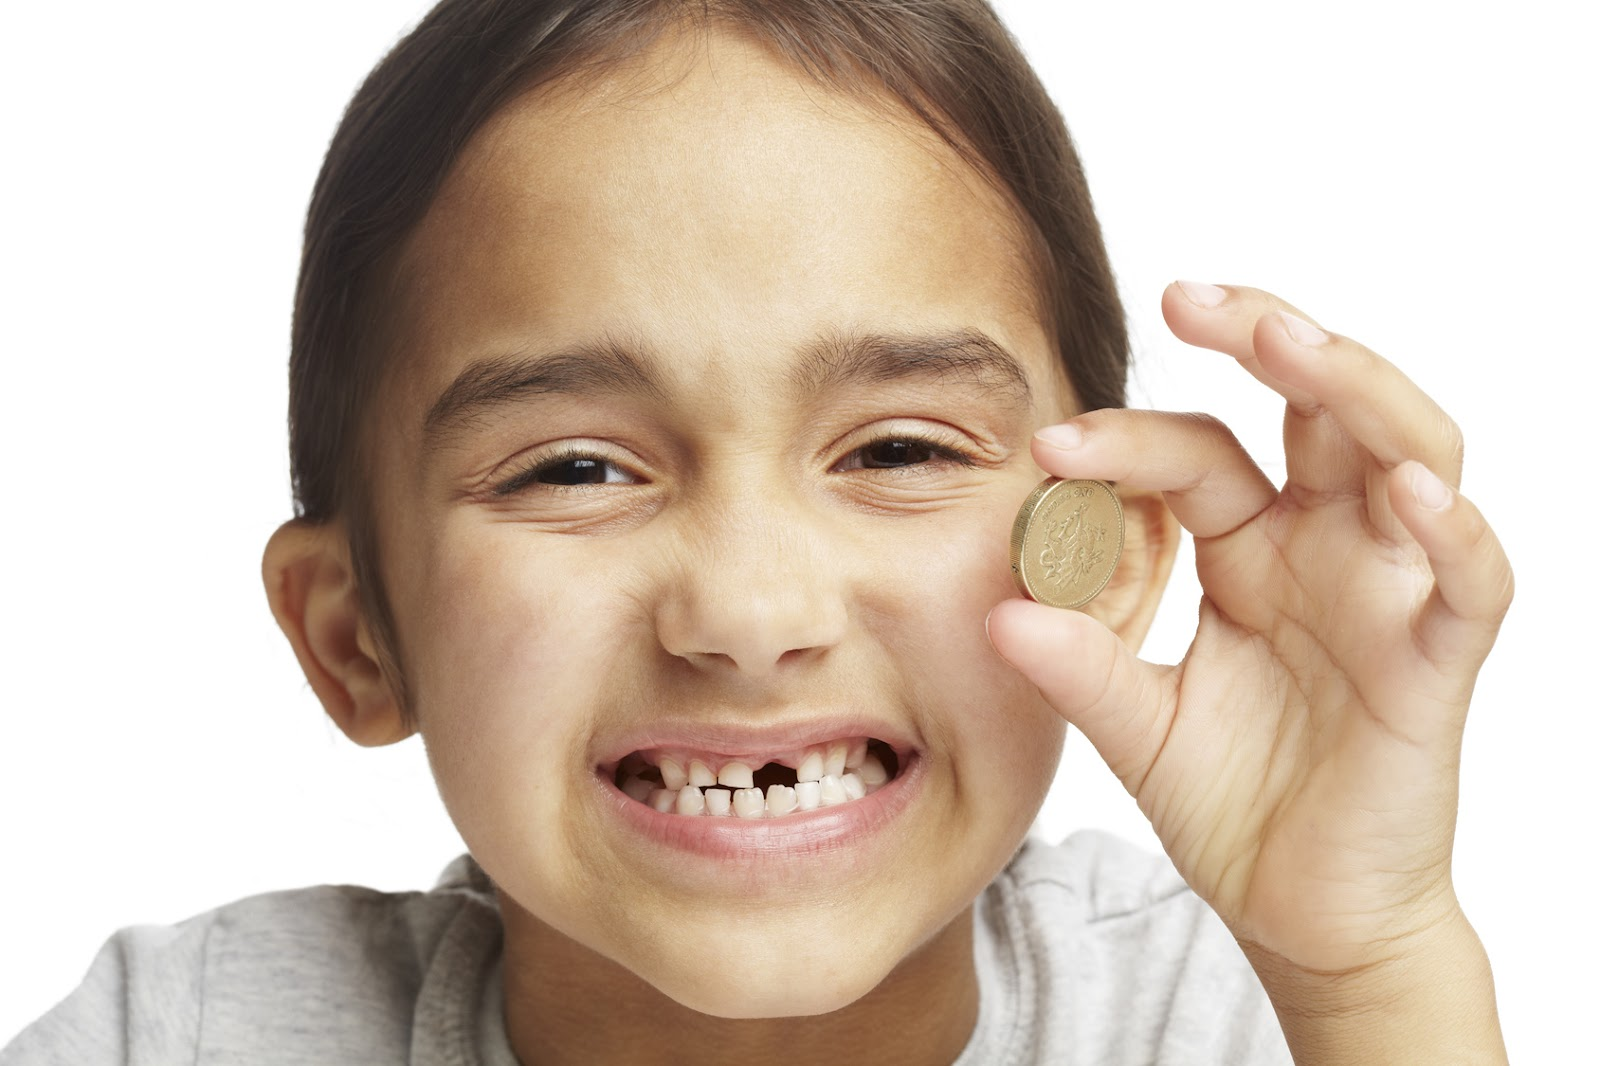 girl with missing tooth holding a coin.jpg